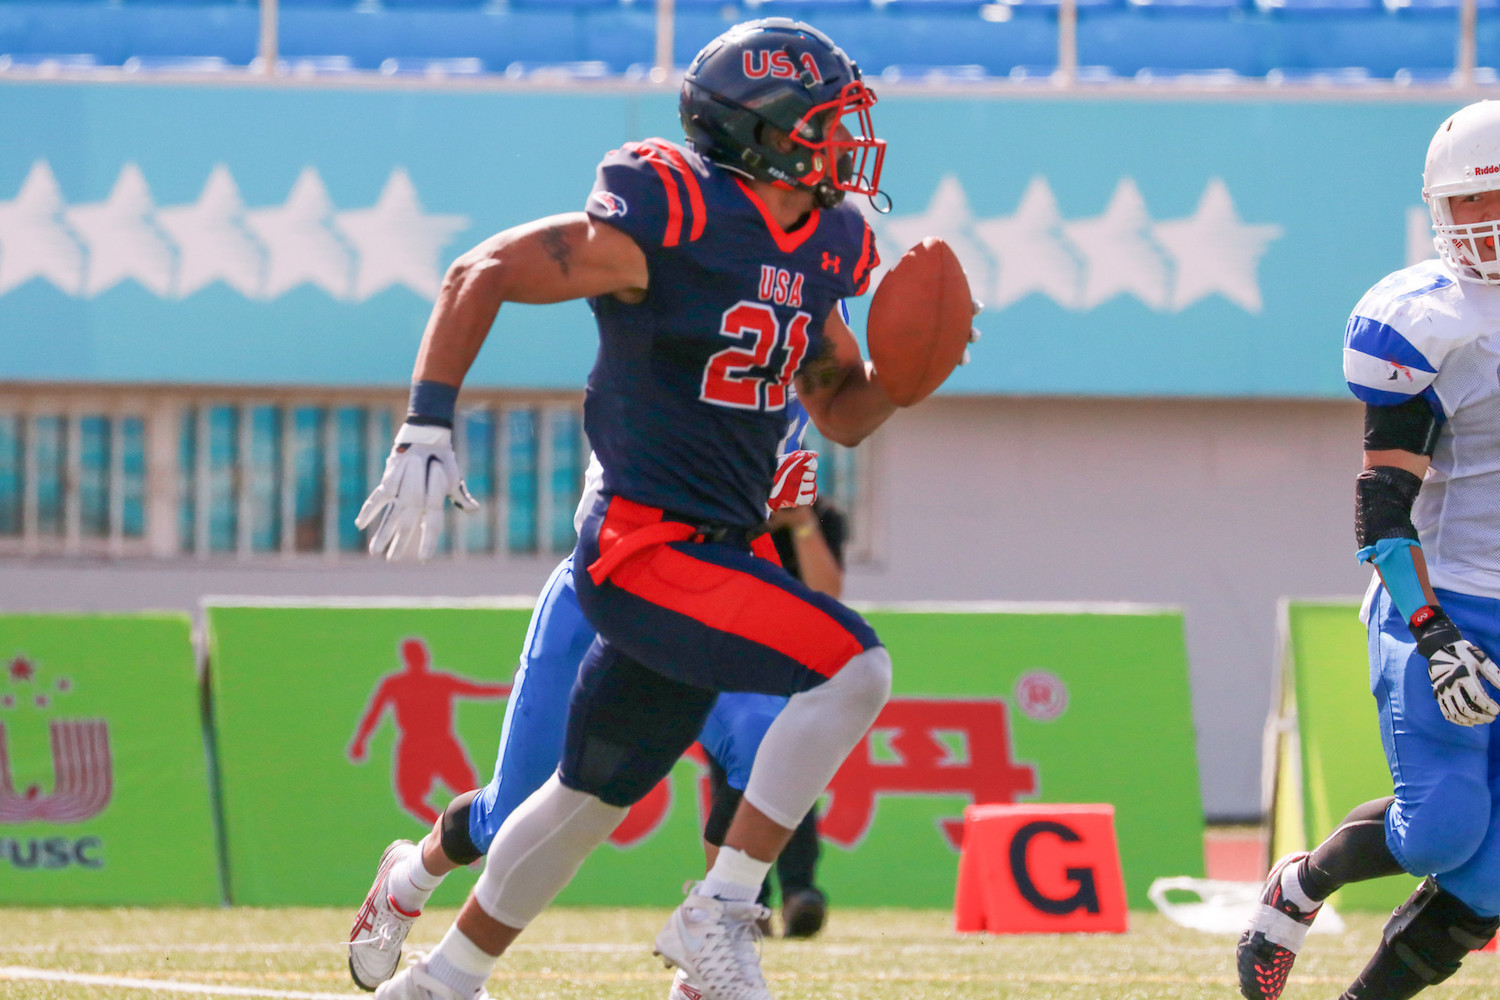 The American football competition will be held between university teams from the 2022 season onwards ©FISU